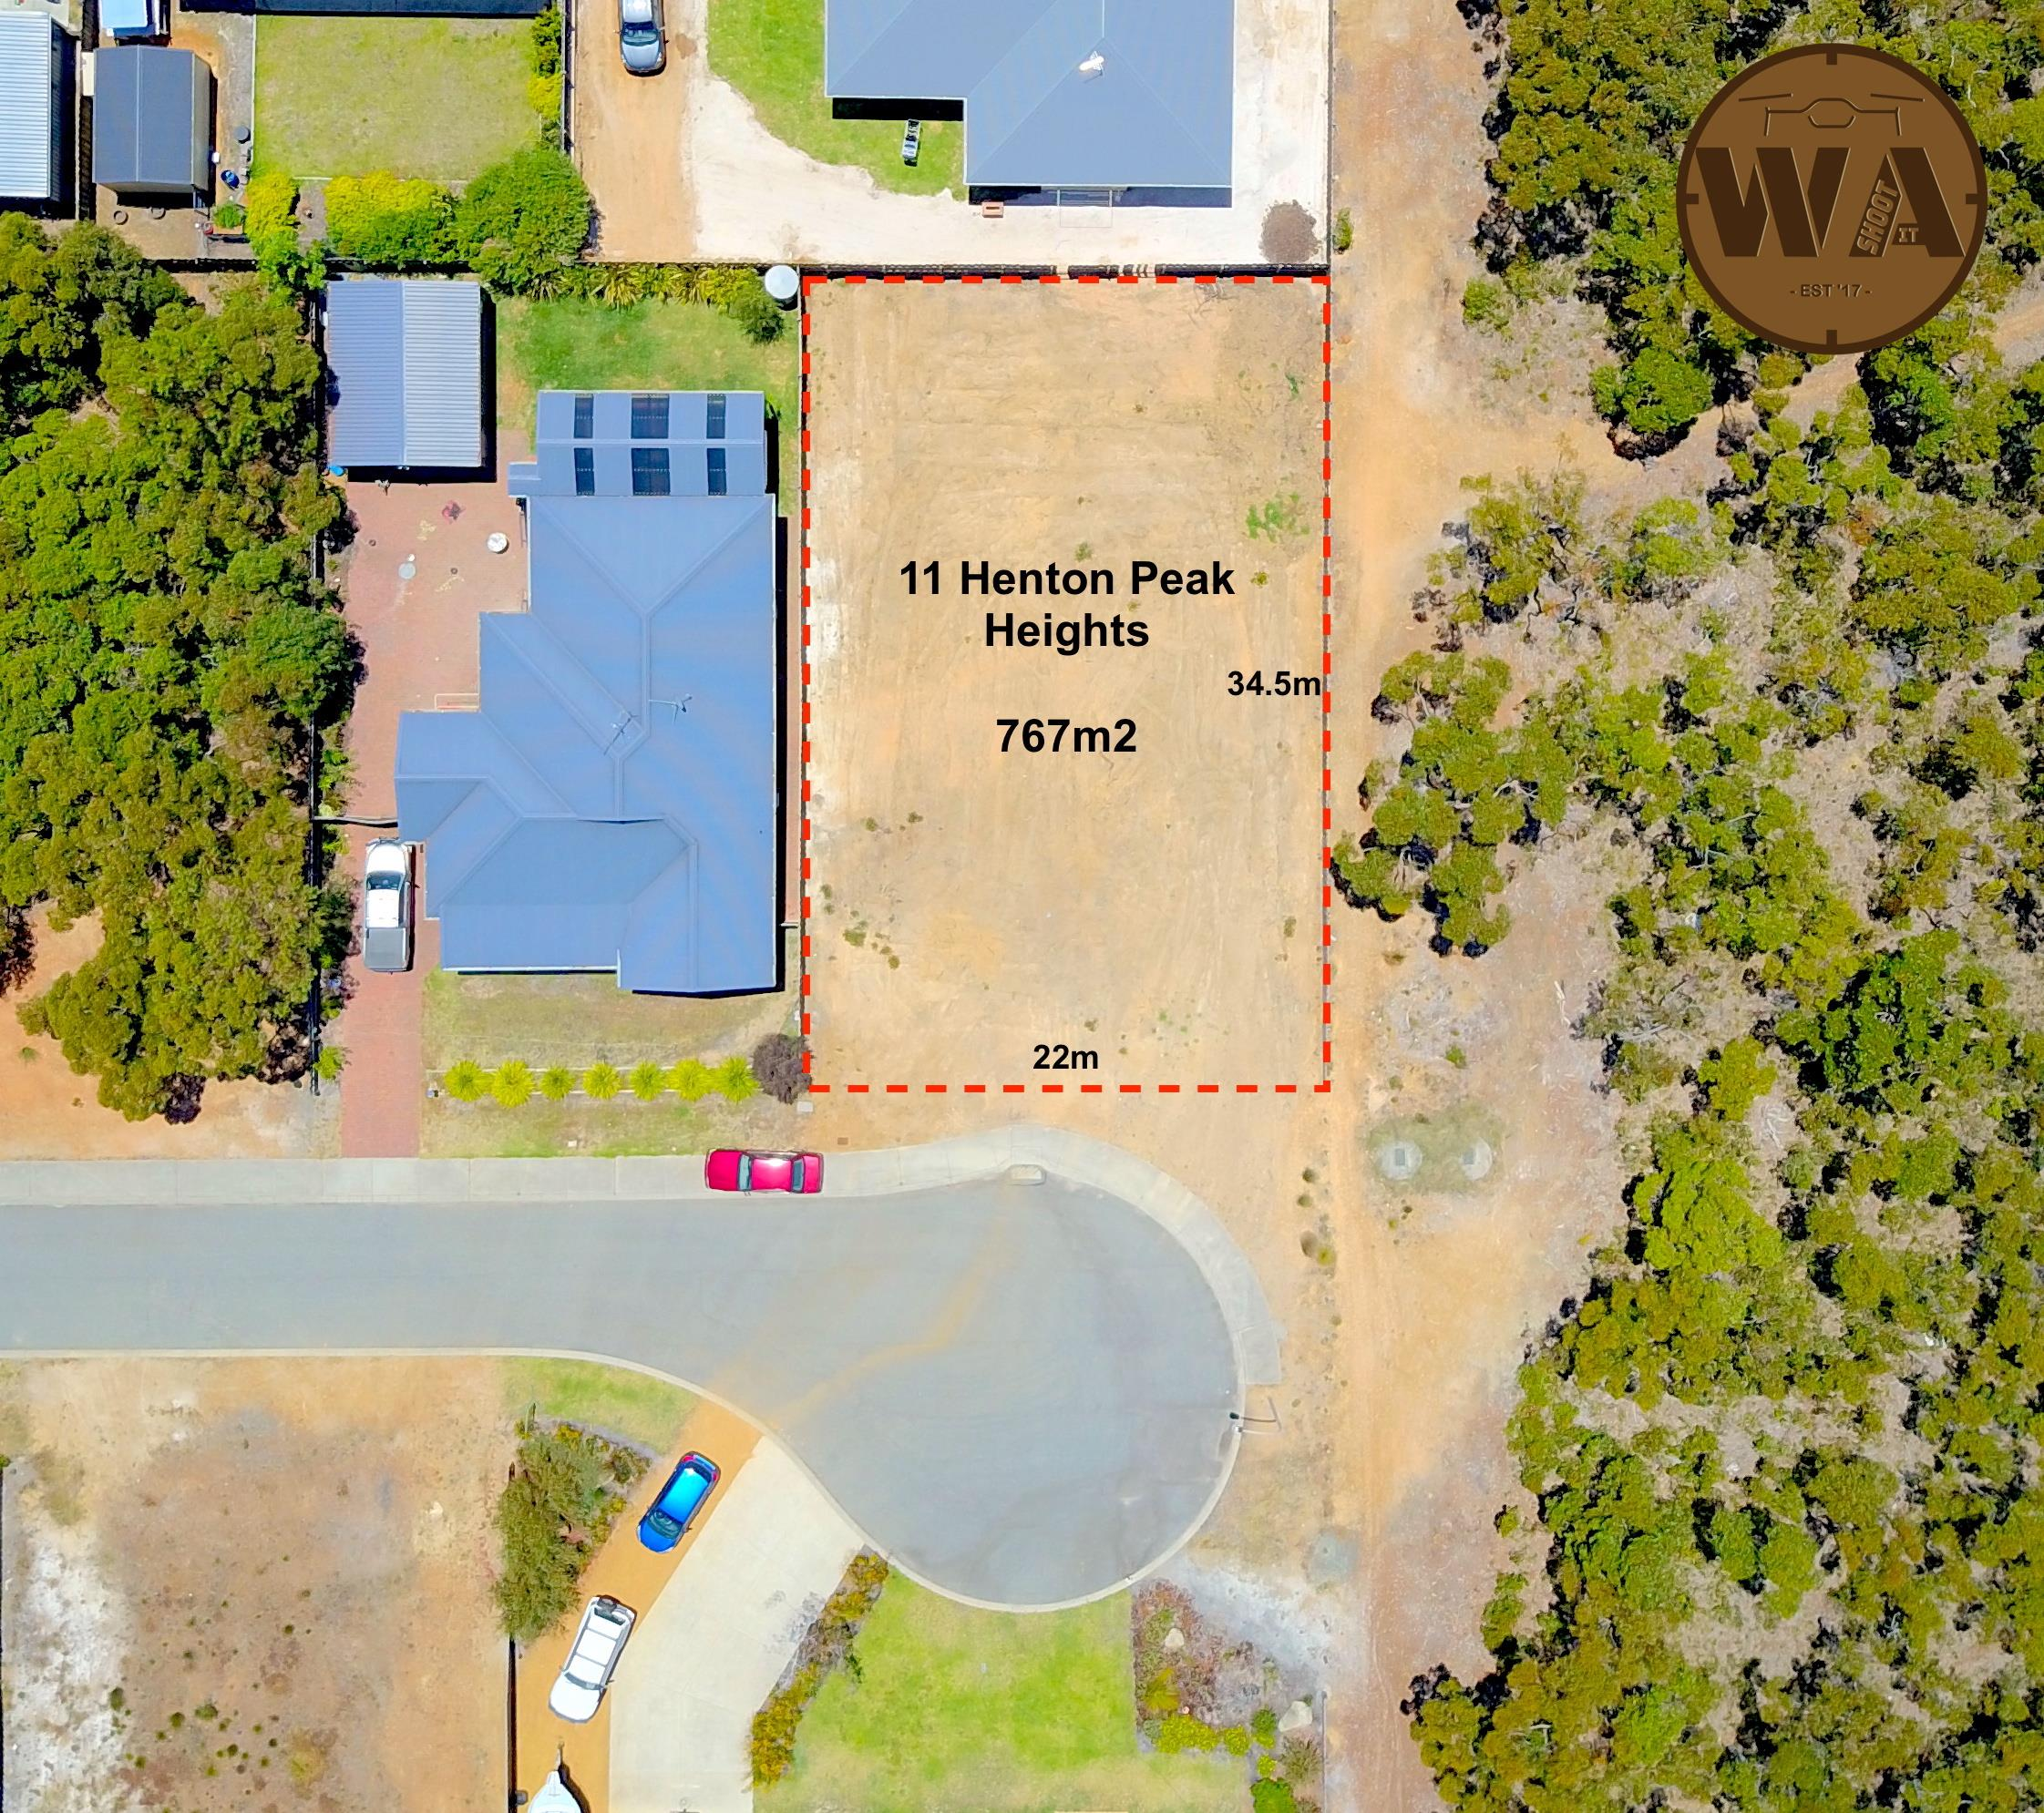 11 Henton Peak Heights Mount Barker WA 6324